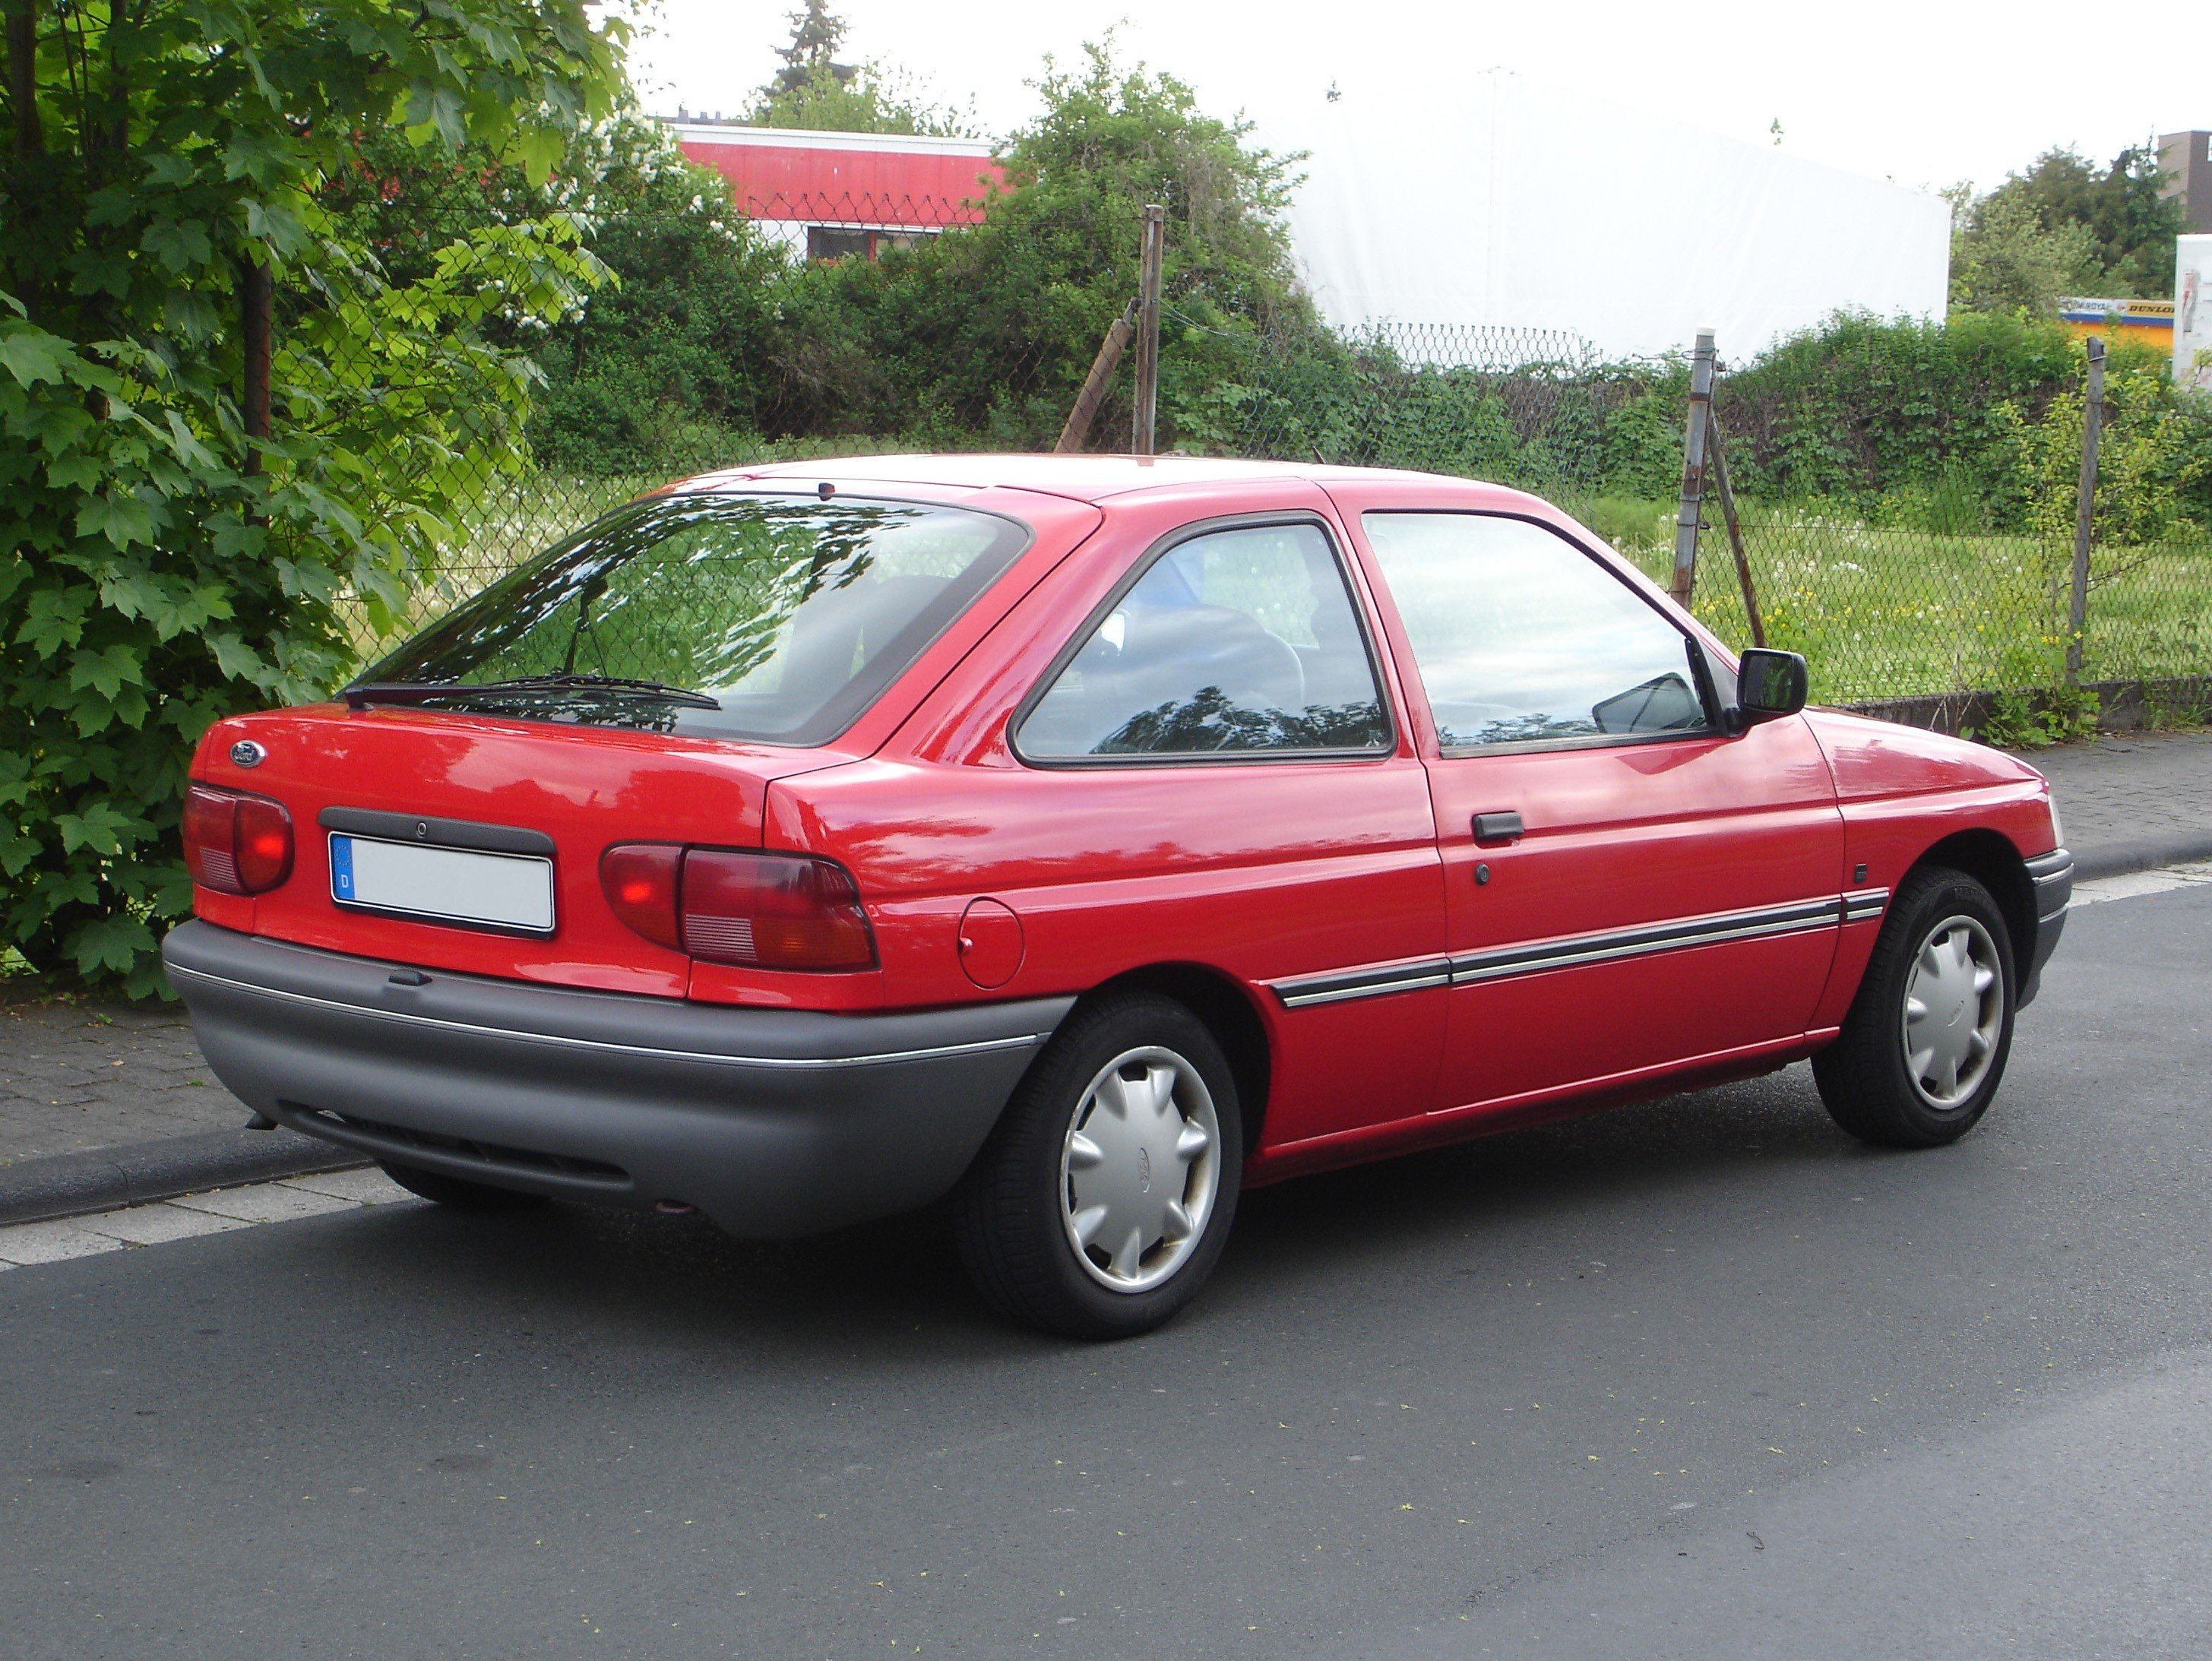 1993 Ford Scorpio I Hatch Gge Pictures Information And Specs